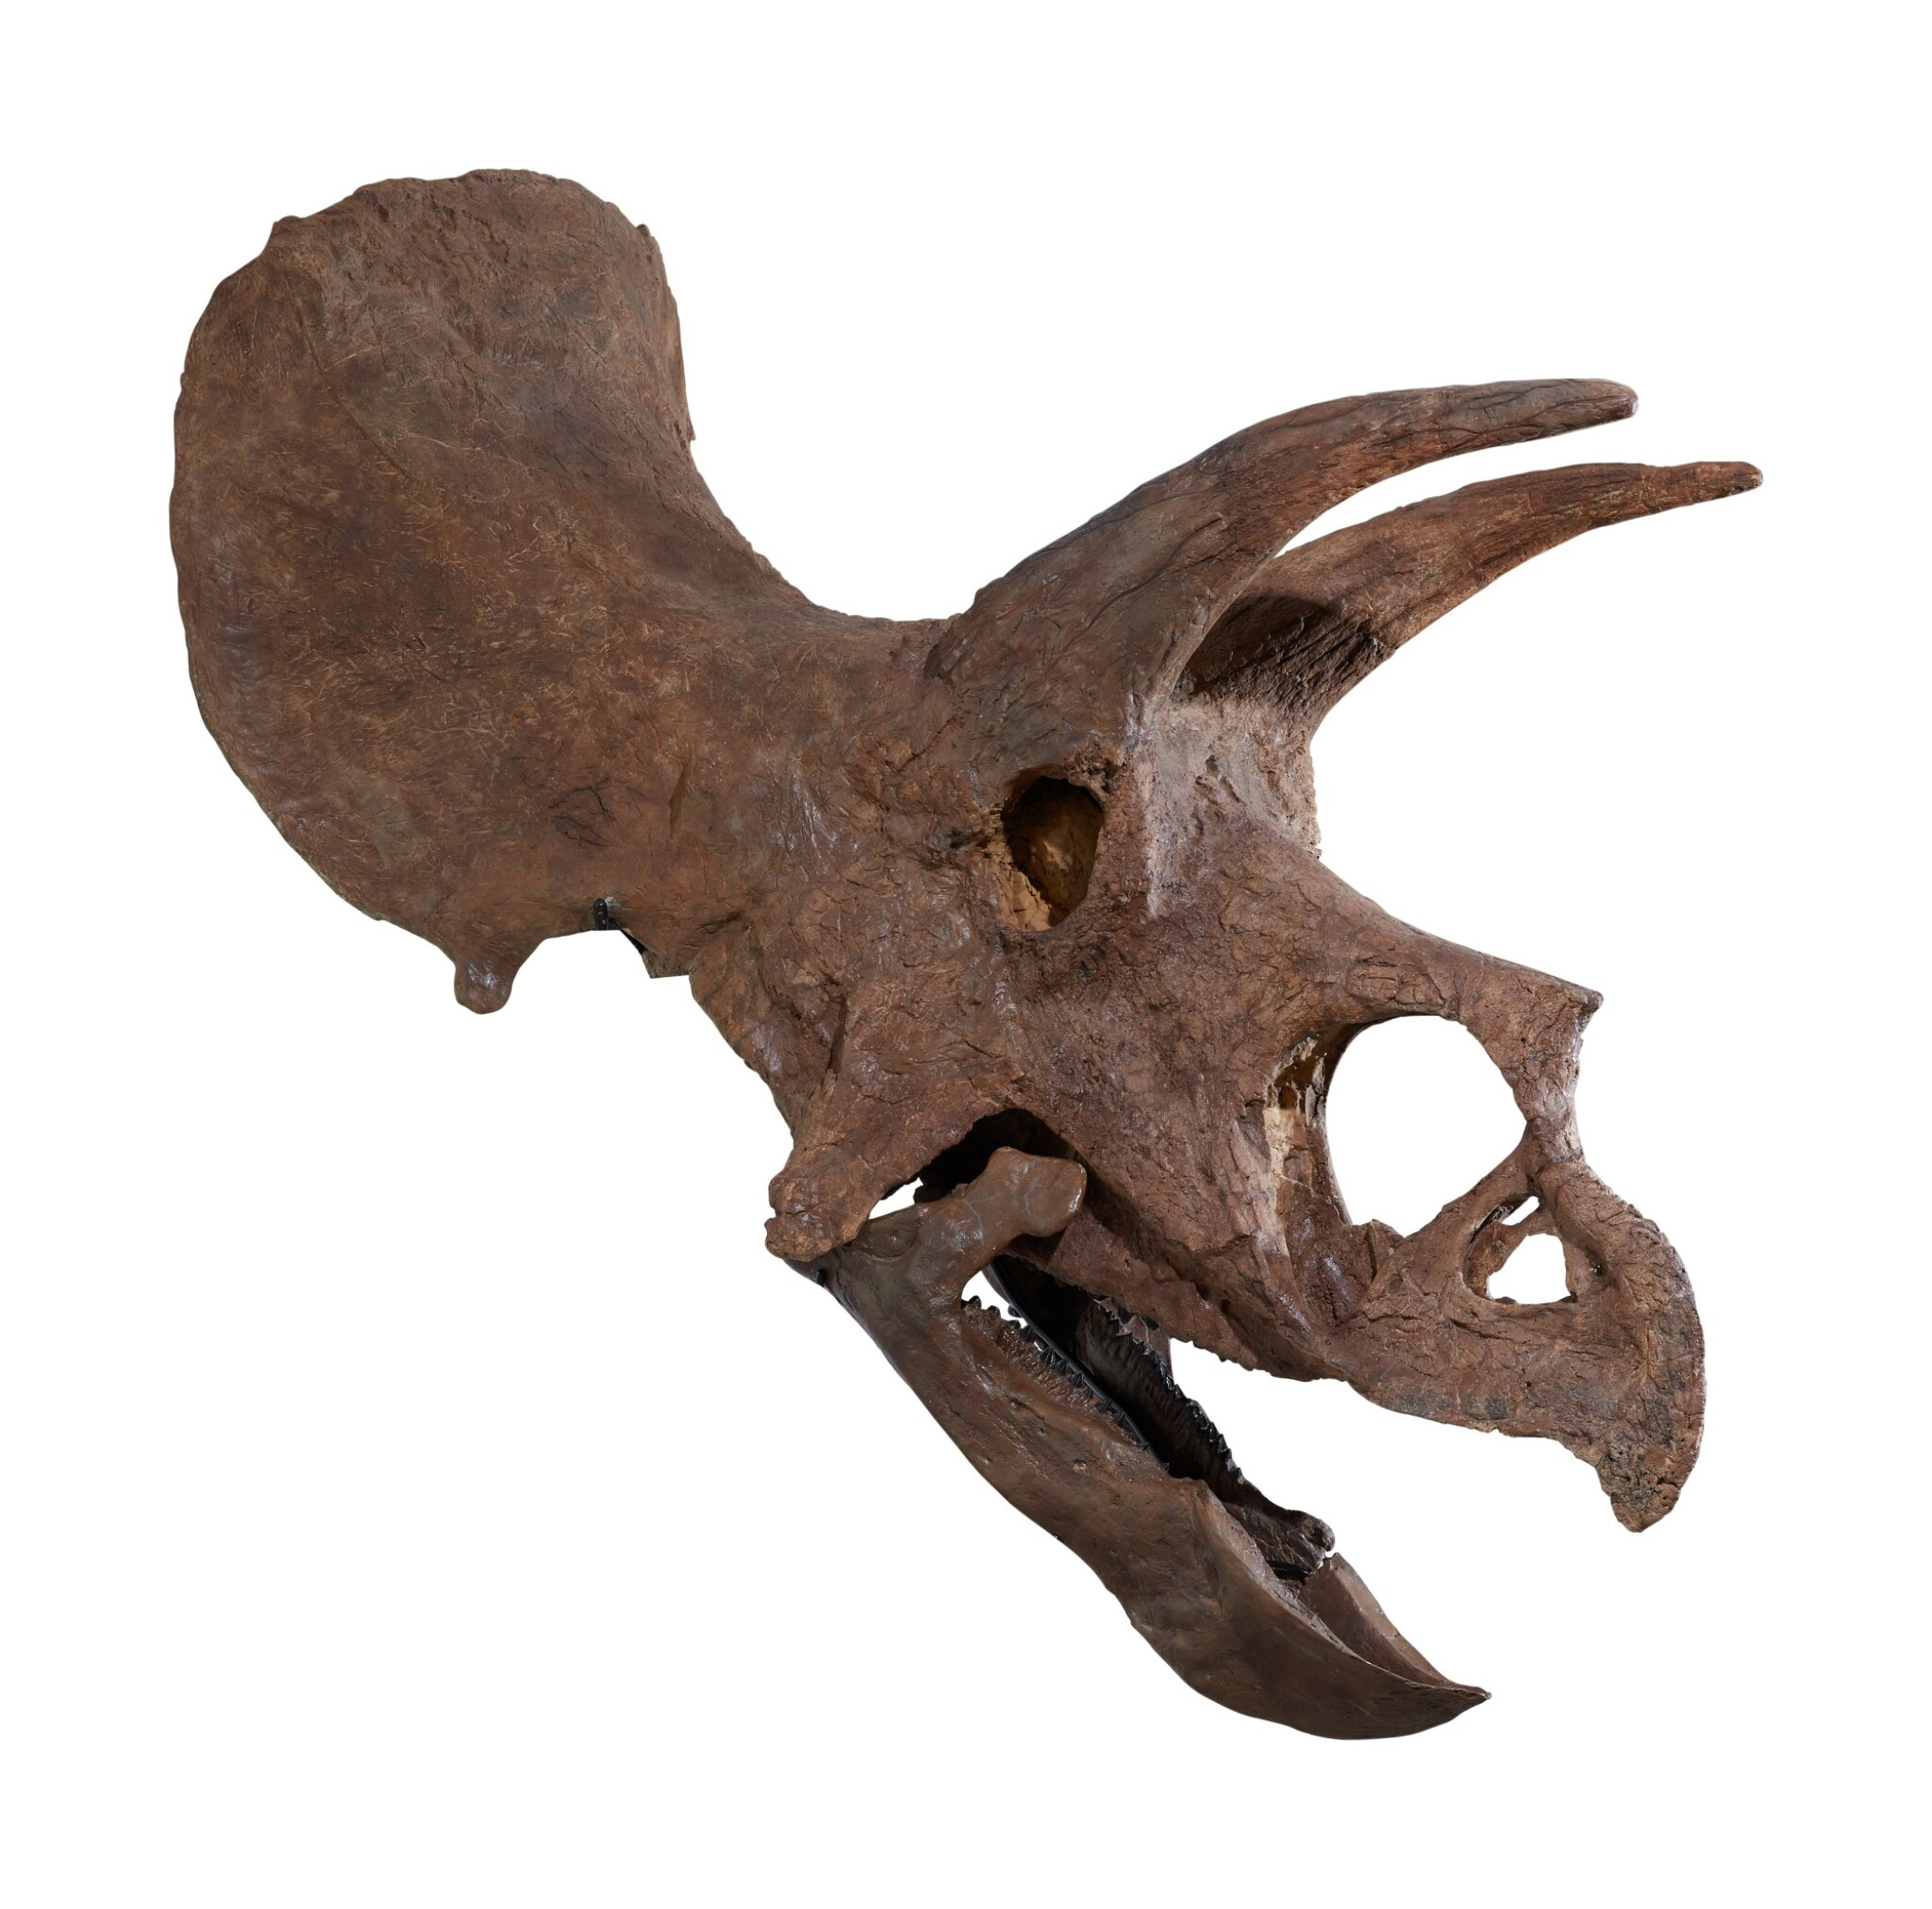 View full screen - View 1 of Lot 1. An Exceptional, Very Complete Triceratops Skull.